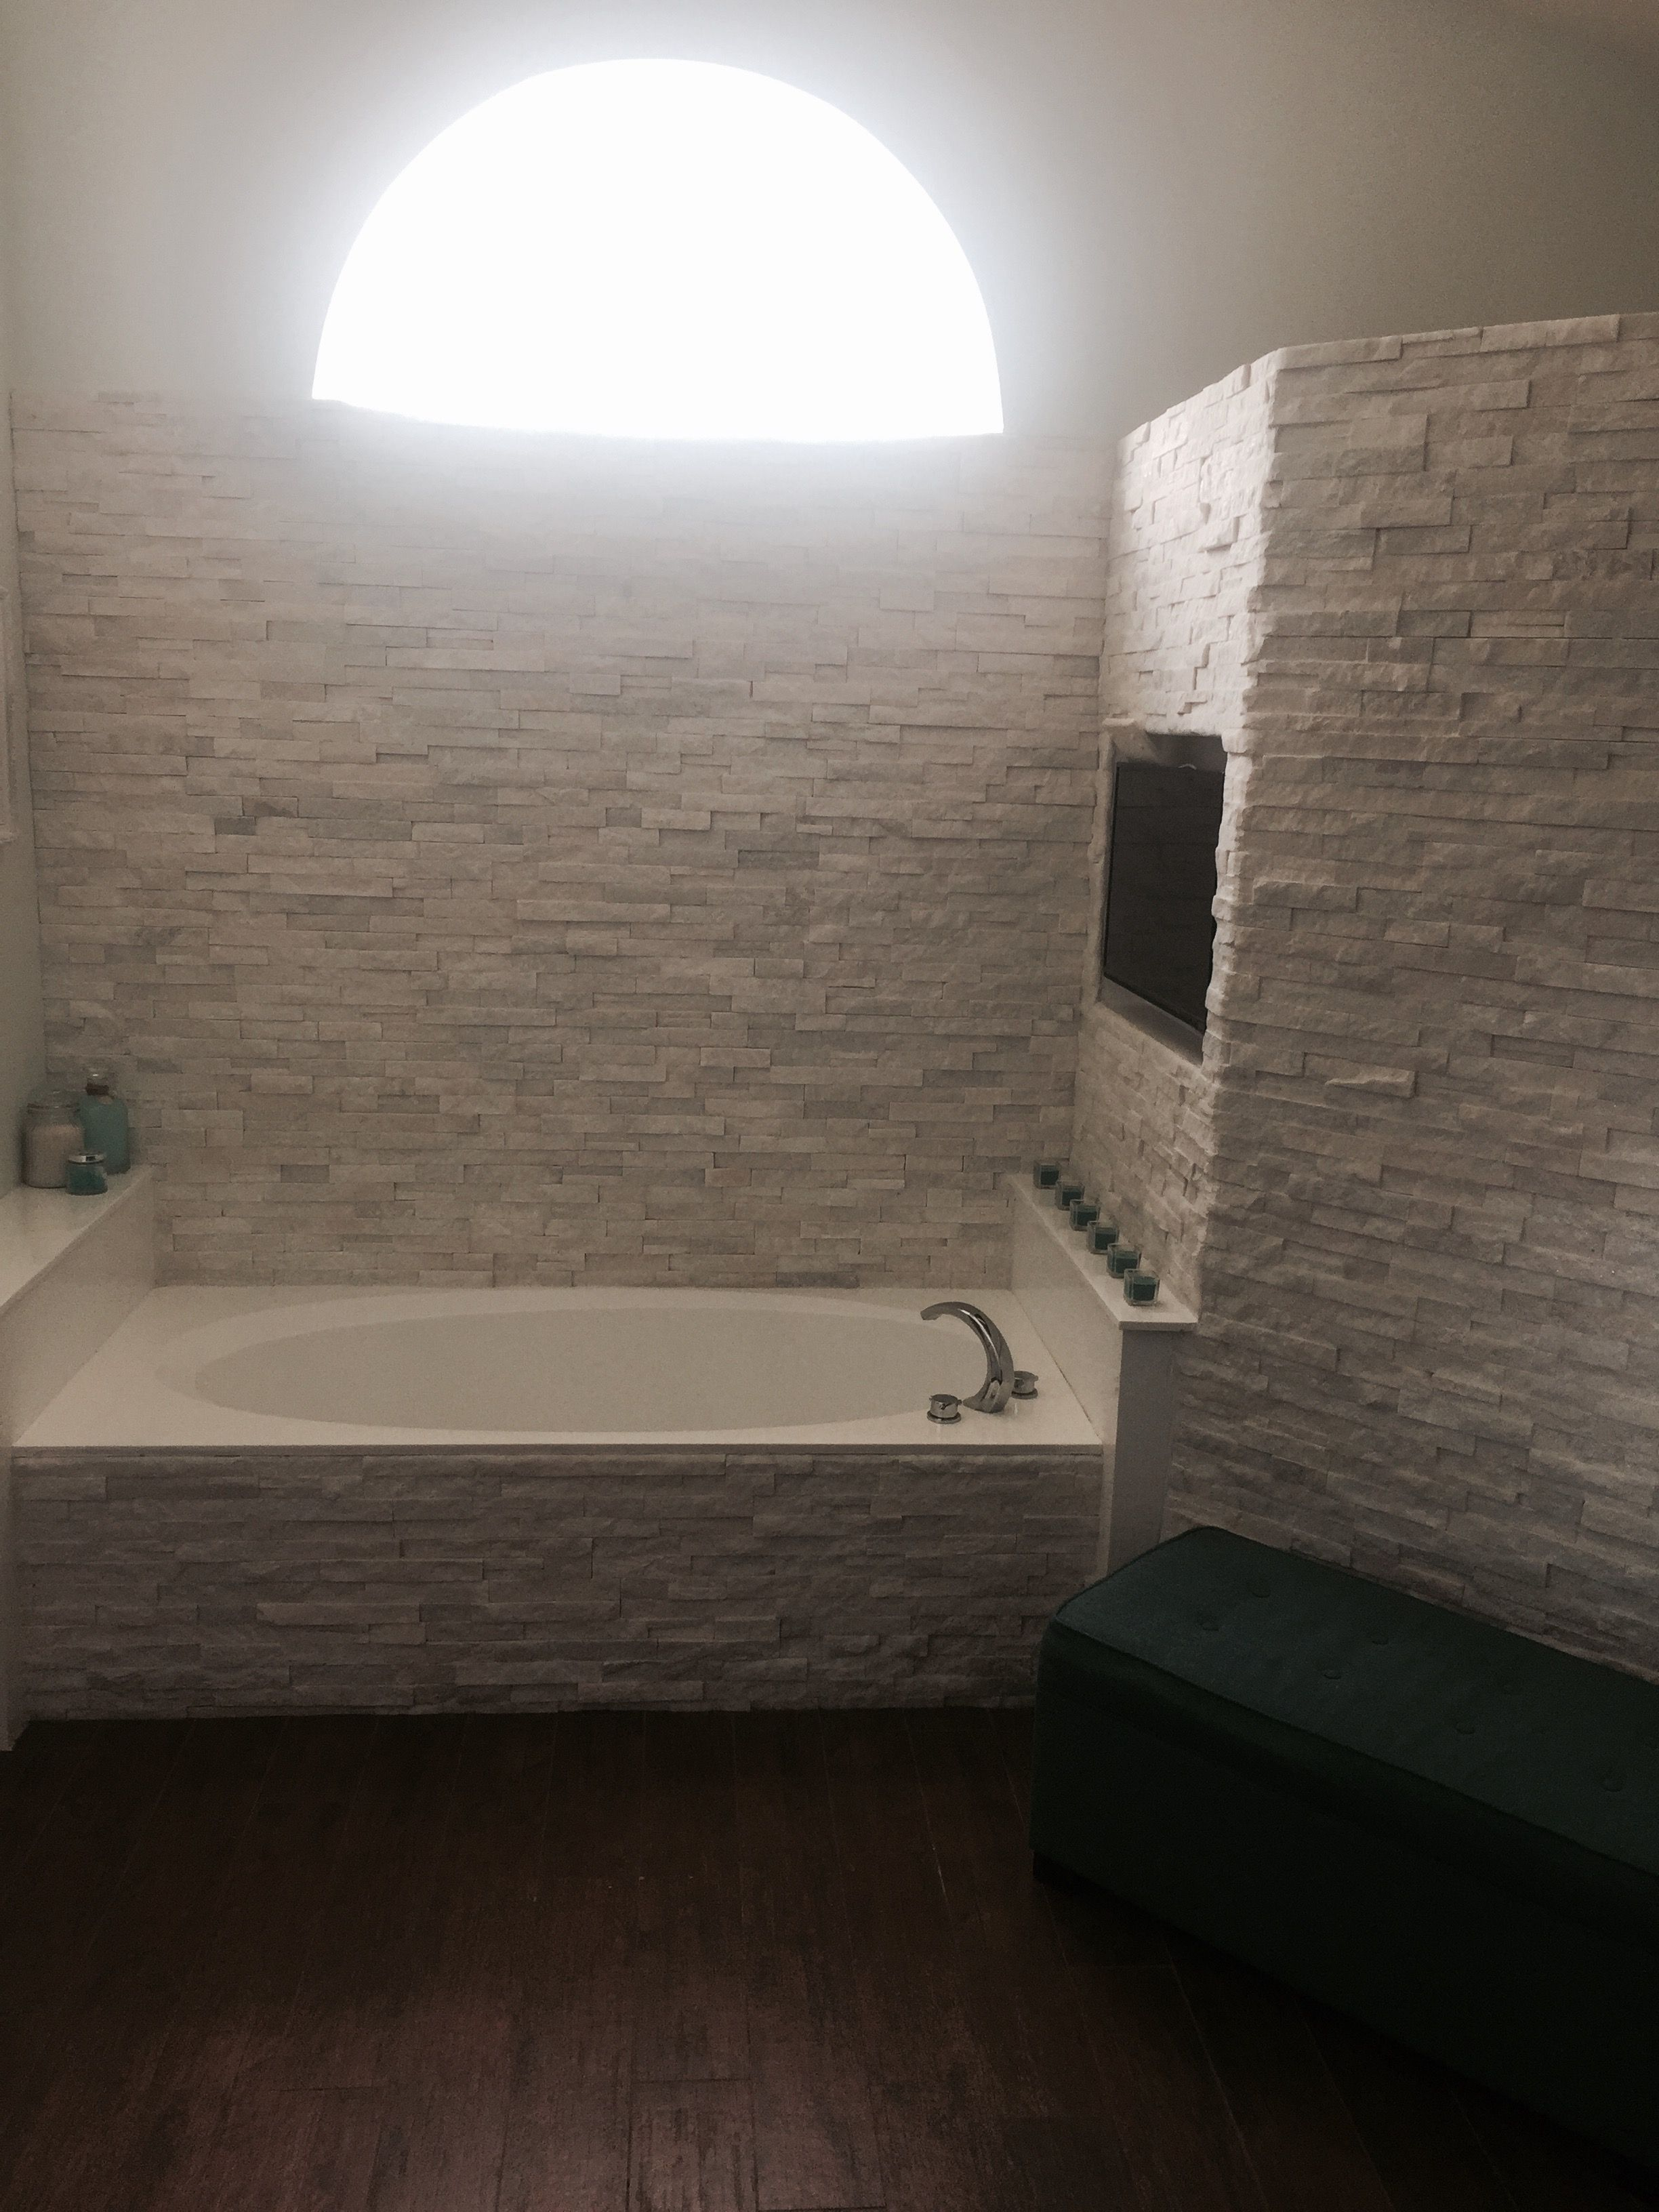 Modern Contemporary Master Bathroom Remodel   White Ledger Stone Surrounds  Walk In Shower Bathtub Wall Cut Out For Flat Screen Tv Above The Bathtub.